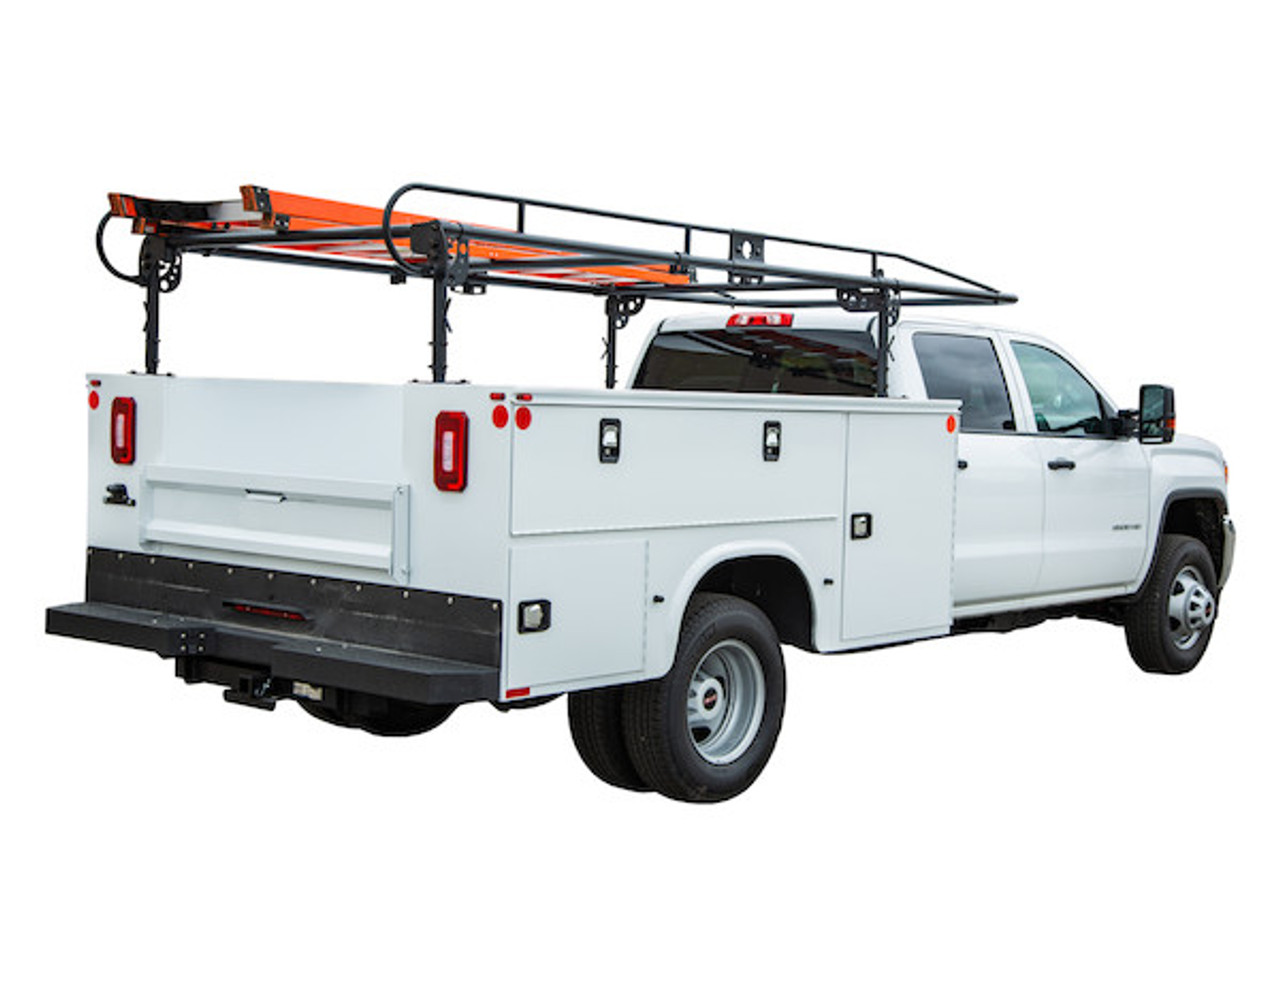 BUYERS 1501250 13-1/2 Foot Black Service Body Ladder Rack for Movers, Contractors, Construction, Painters Picture # 3